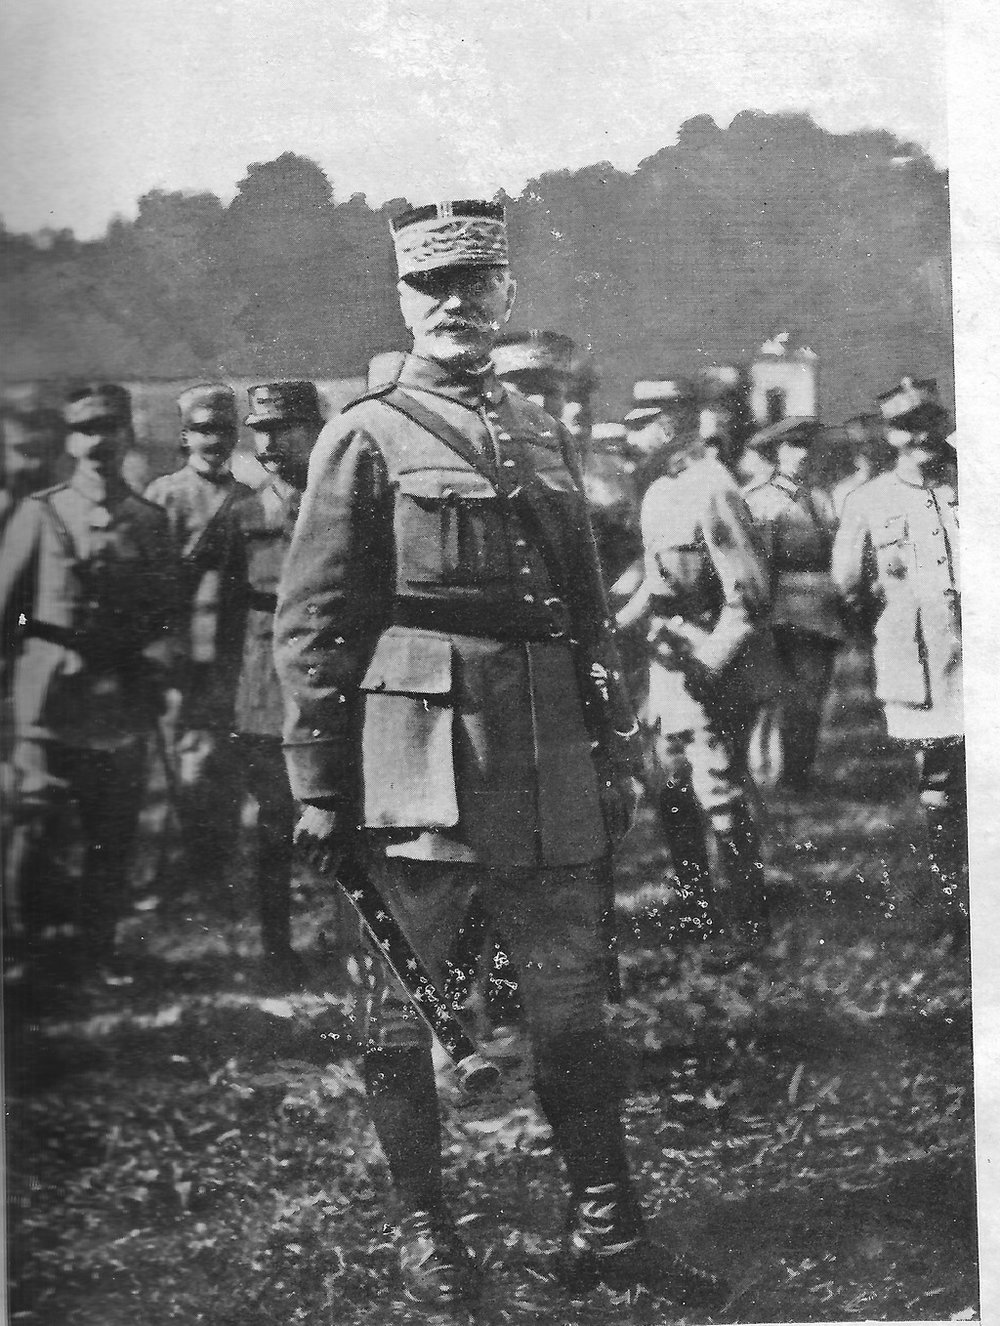 Ceremony of promotion to Marshal of General Ferdinand Foch in 23 of October of 1918, when he received the Marshal of France (Wikimedia)